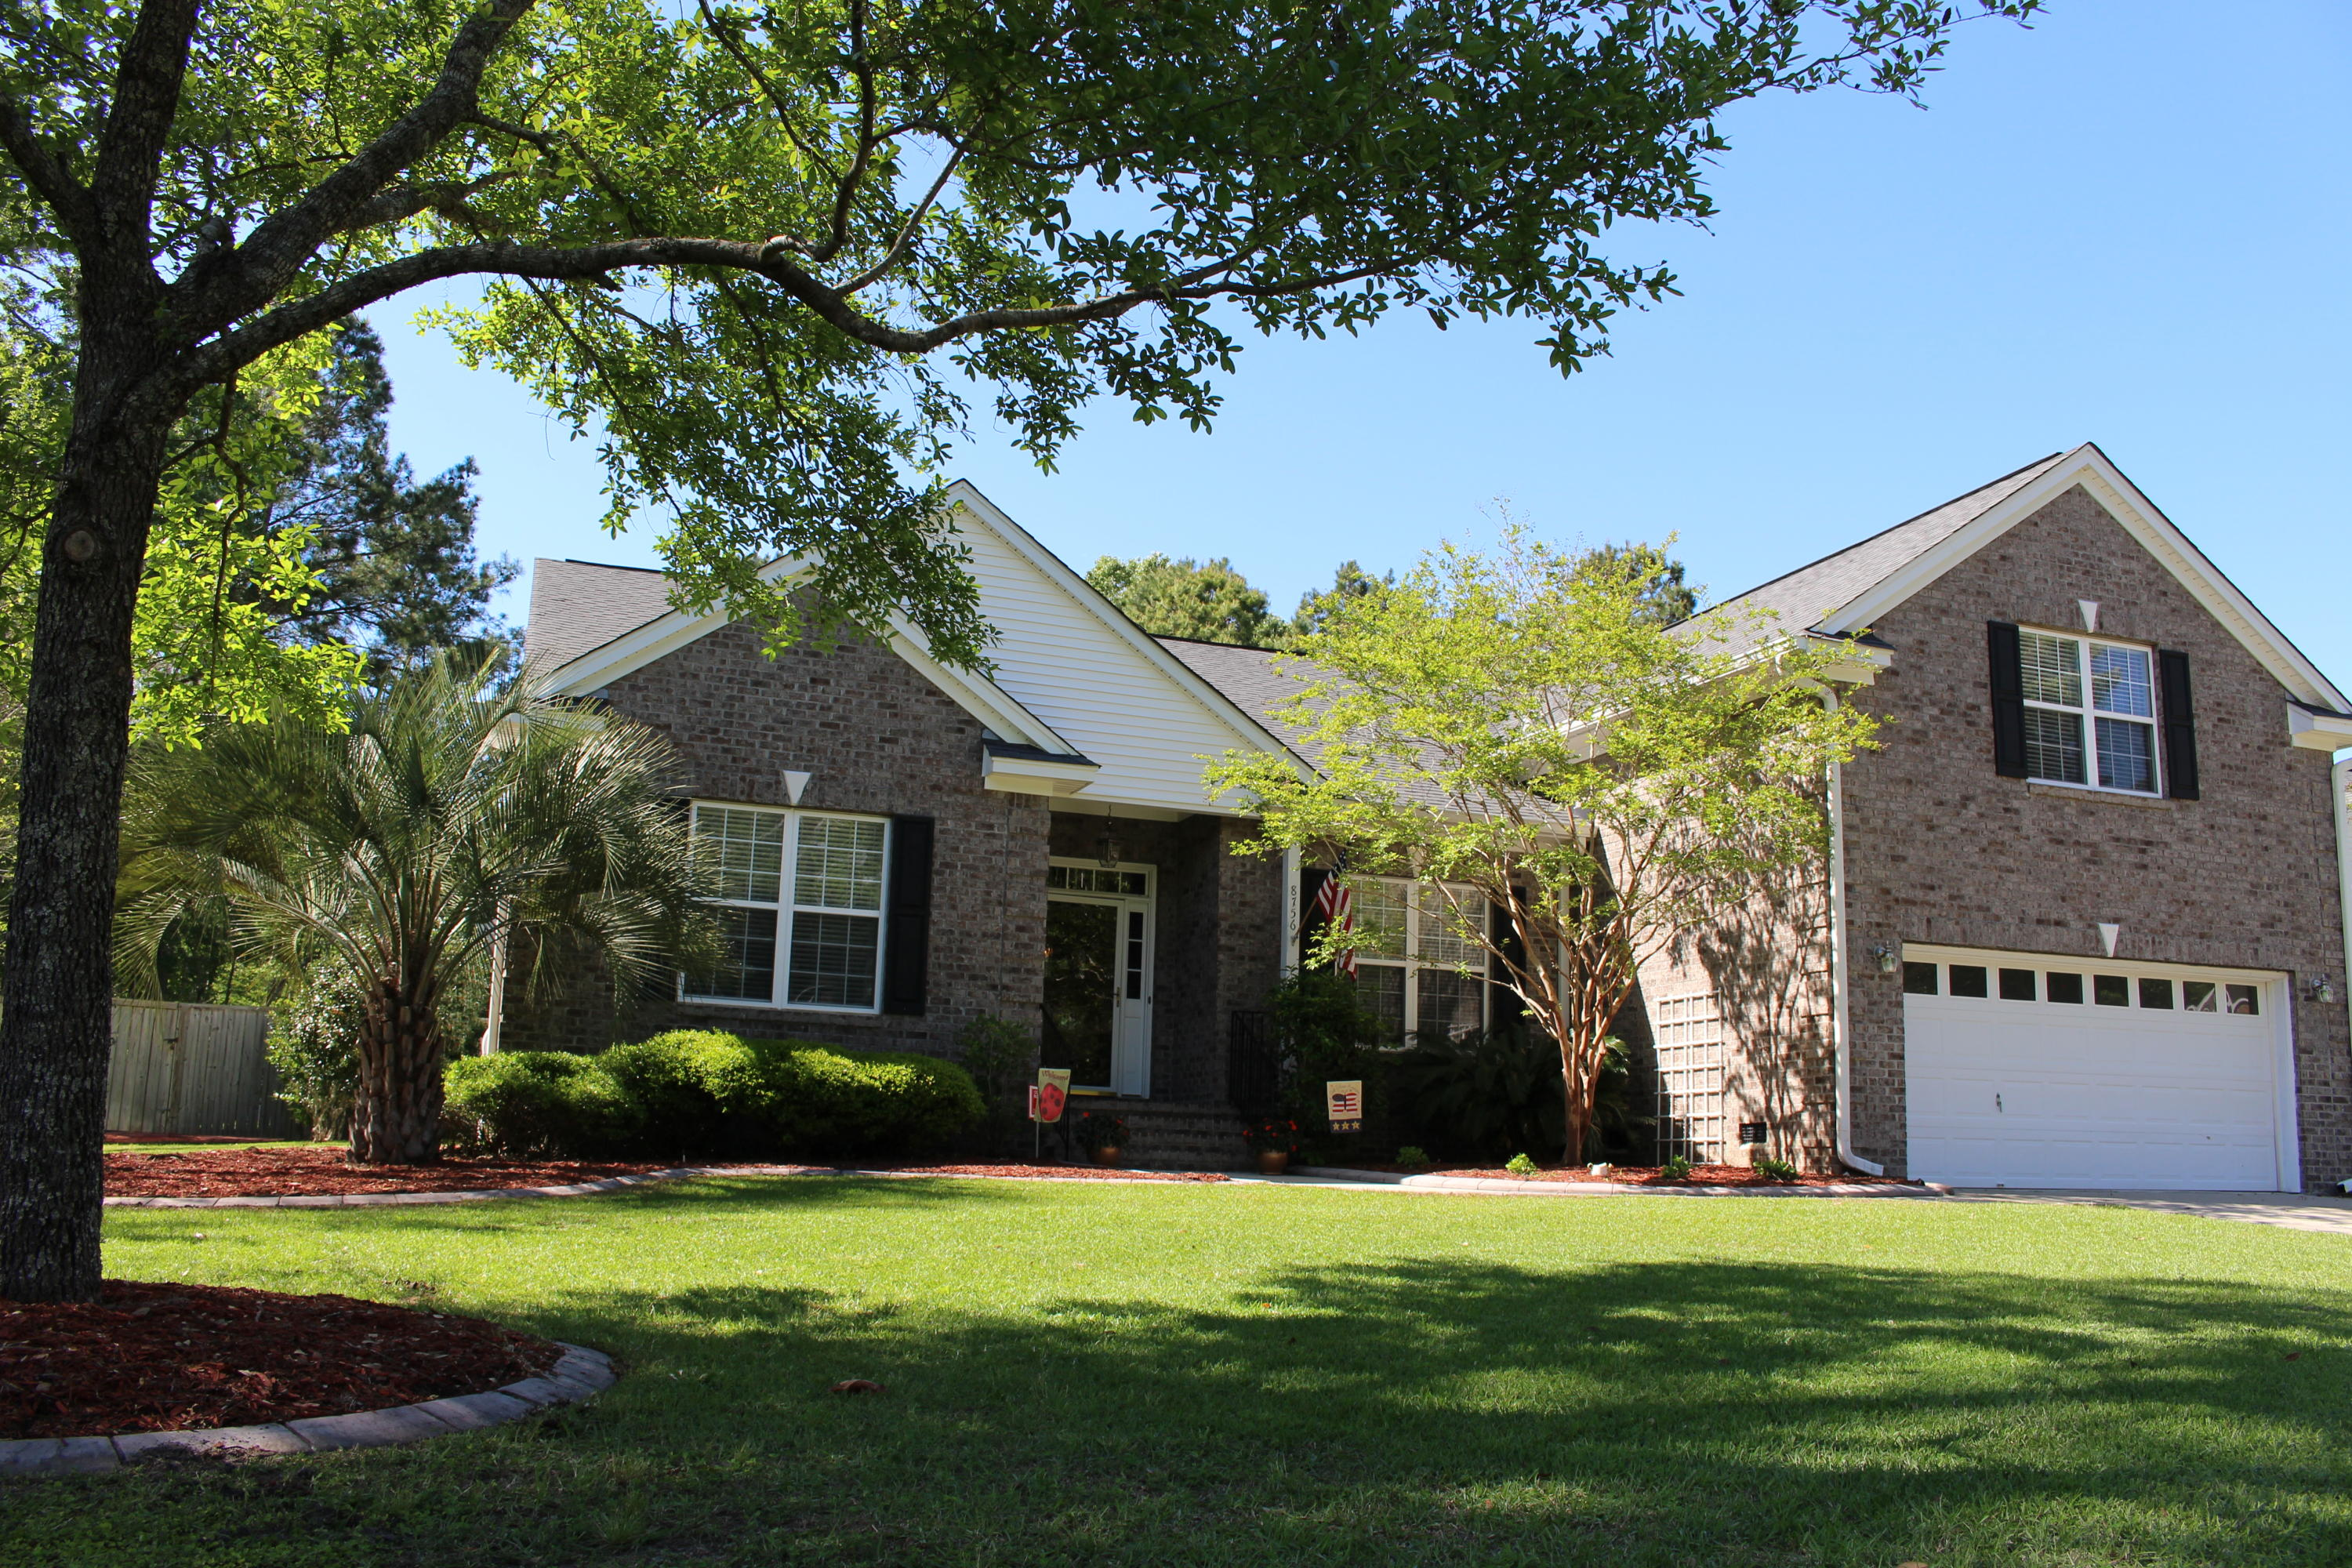 Whitehall Subdivision Homes For Sale, N Charleston SC